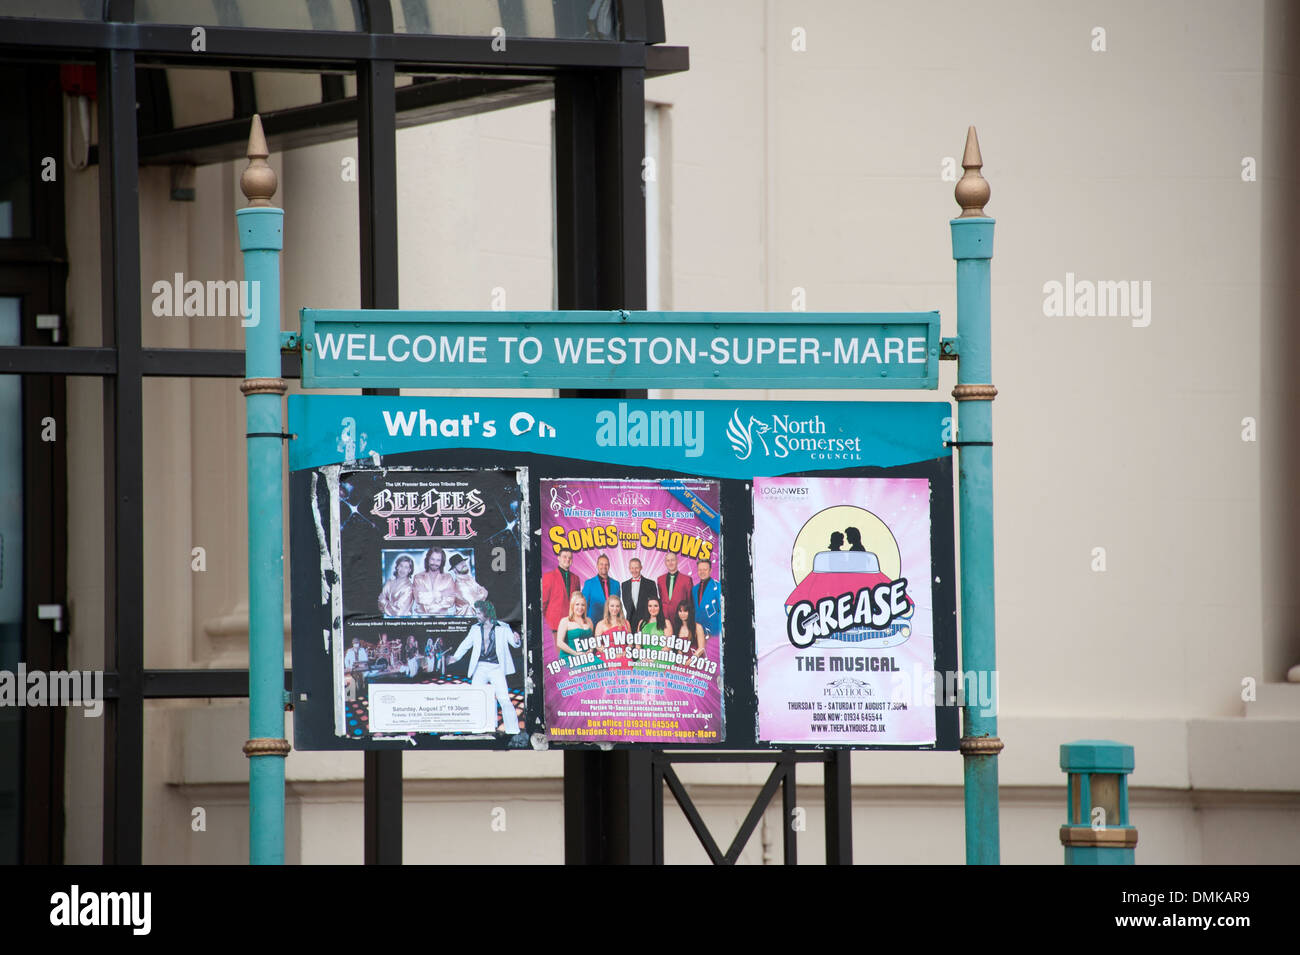 Welcome to Sign Weston-Super-Mare UK - Stock Image